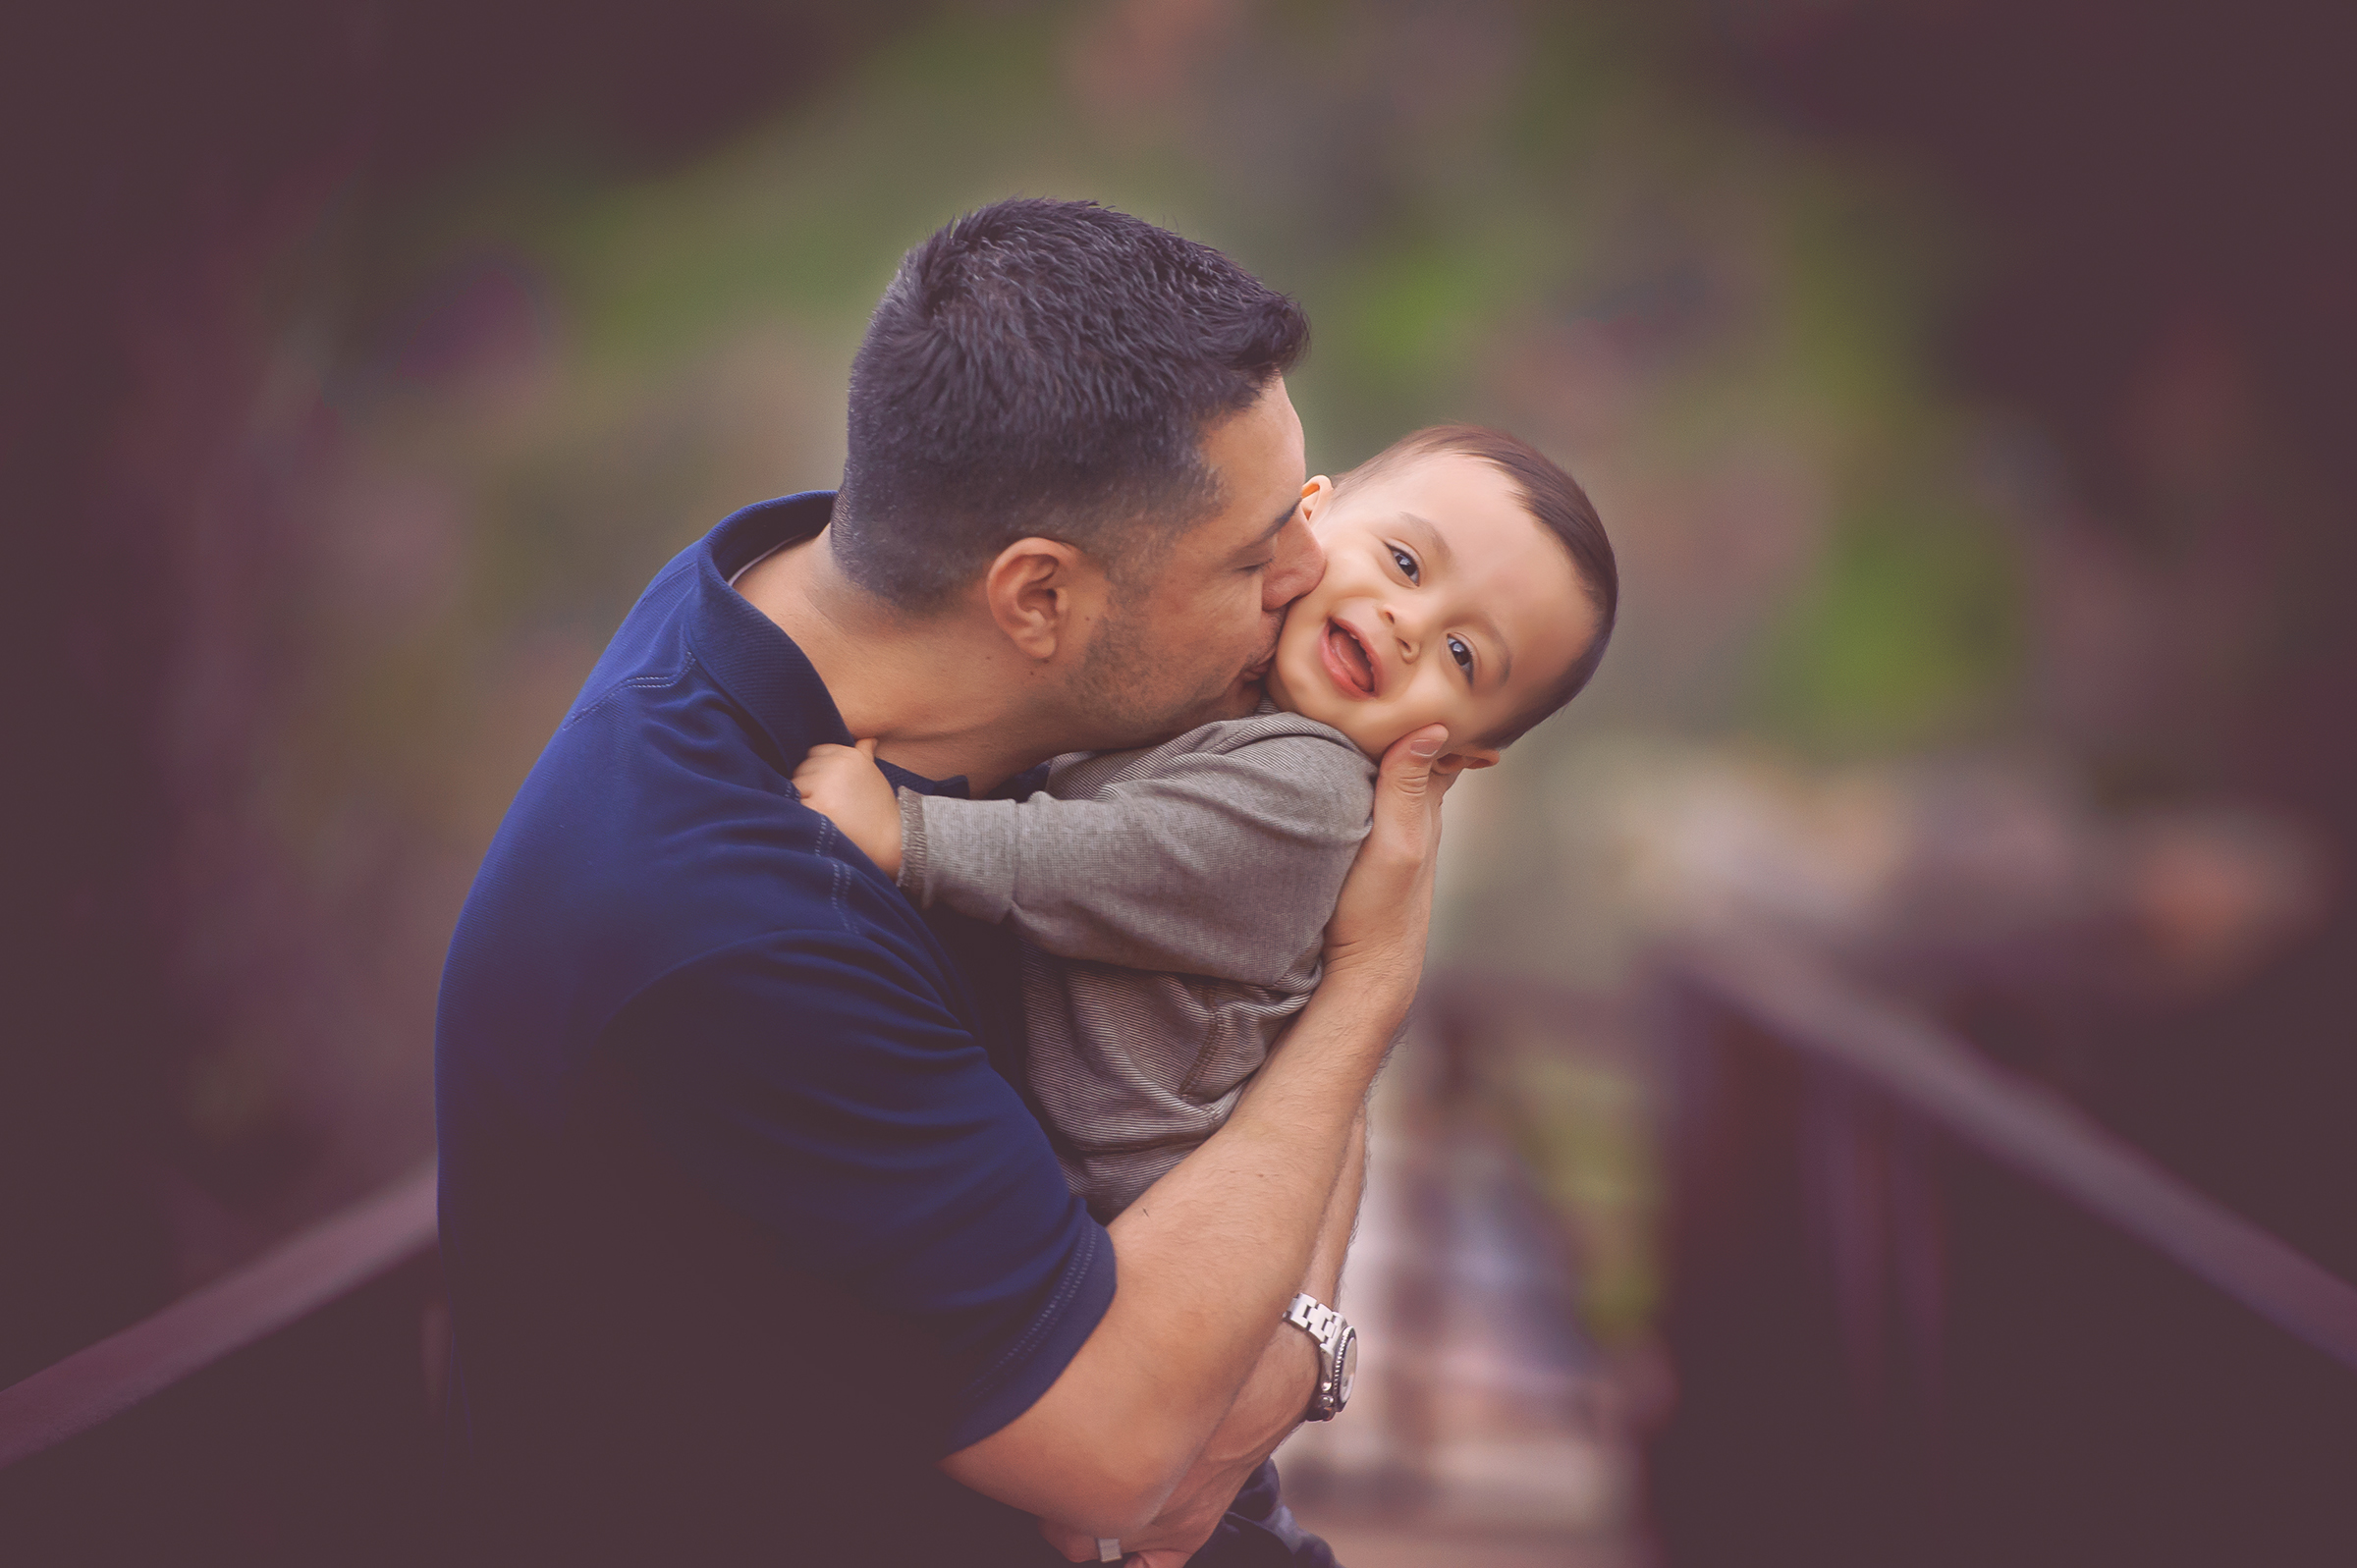 Photography for father and son in San Diego father's day portraits